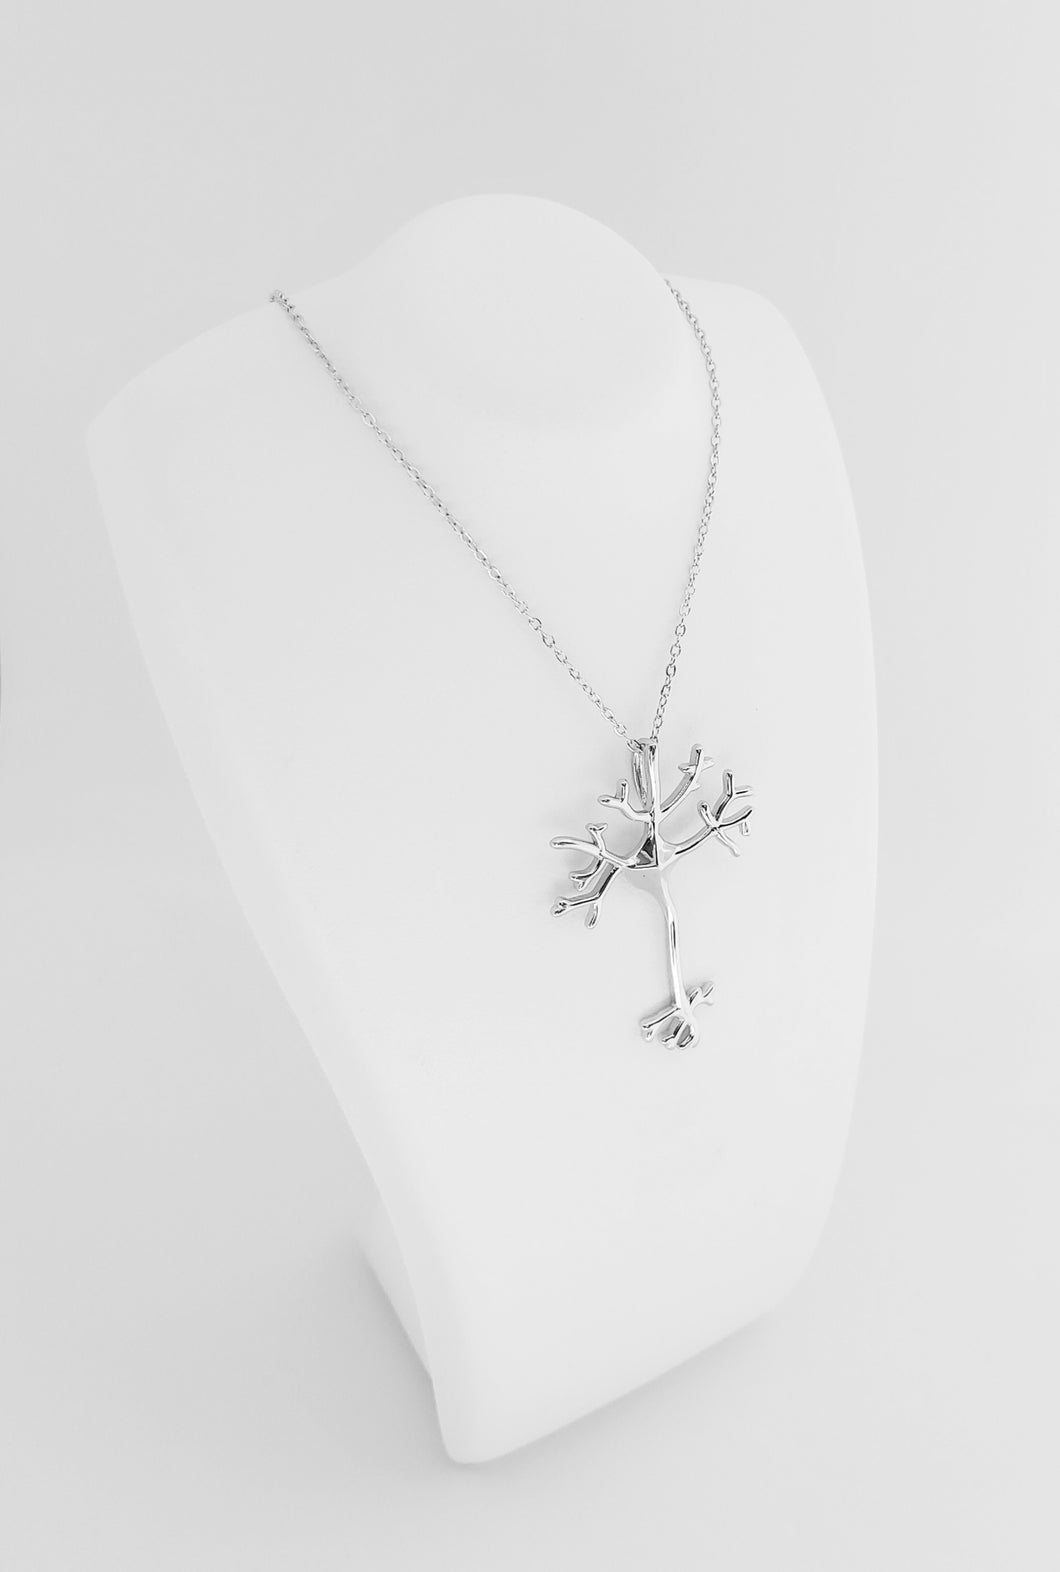 Sterling Silver Neuron Necklace